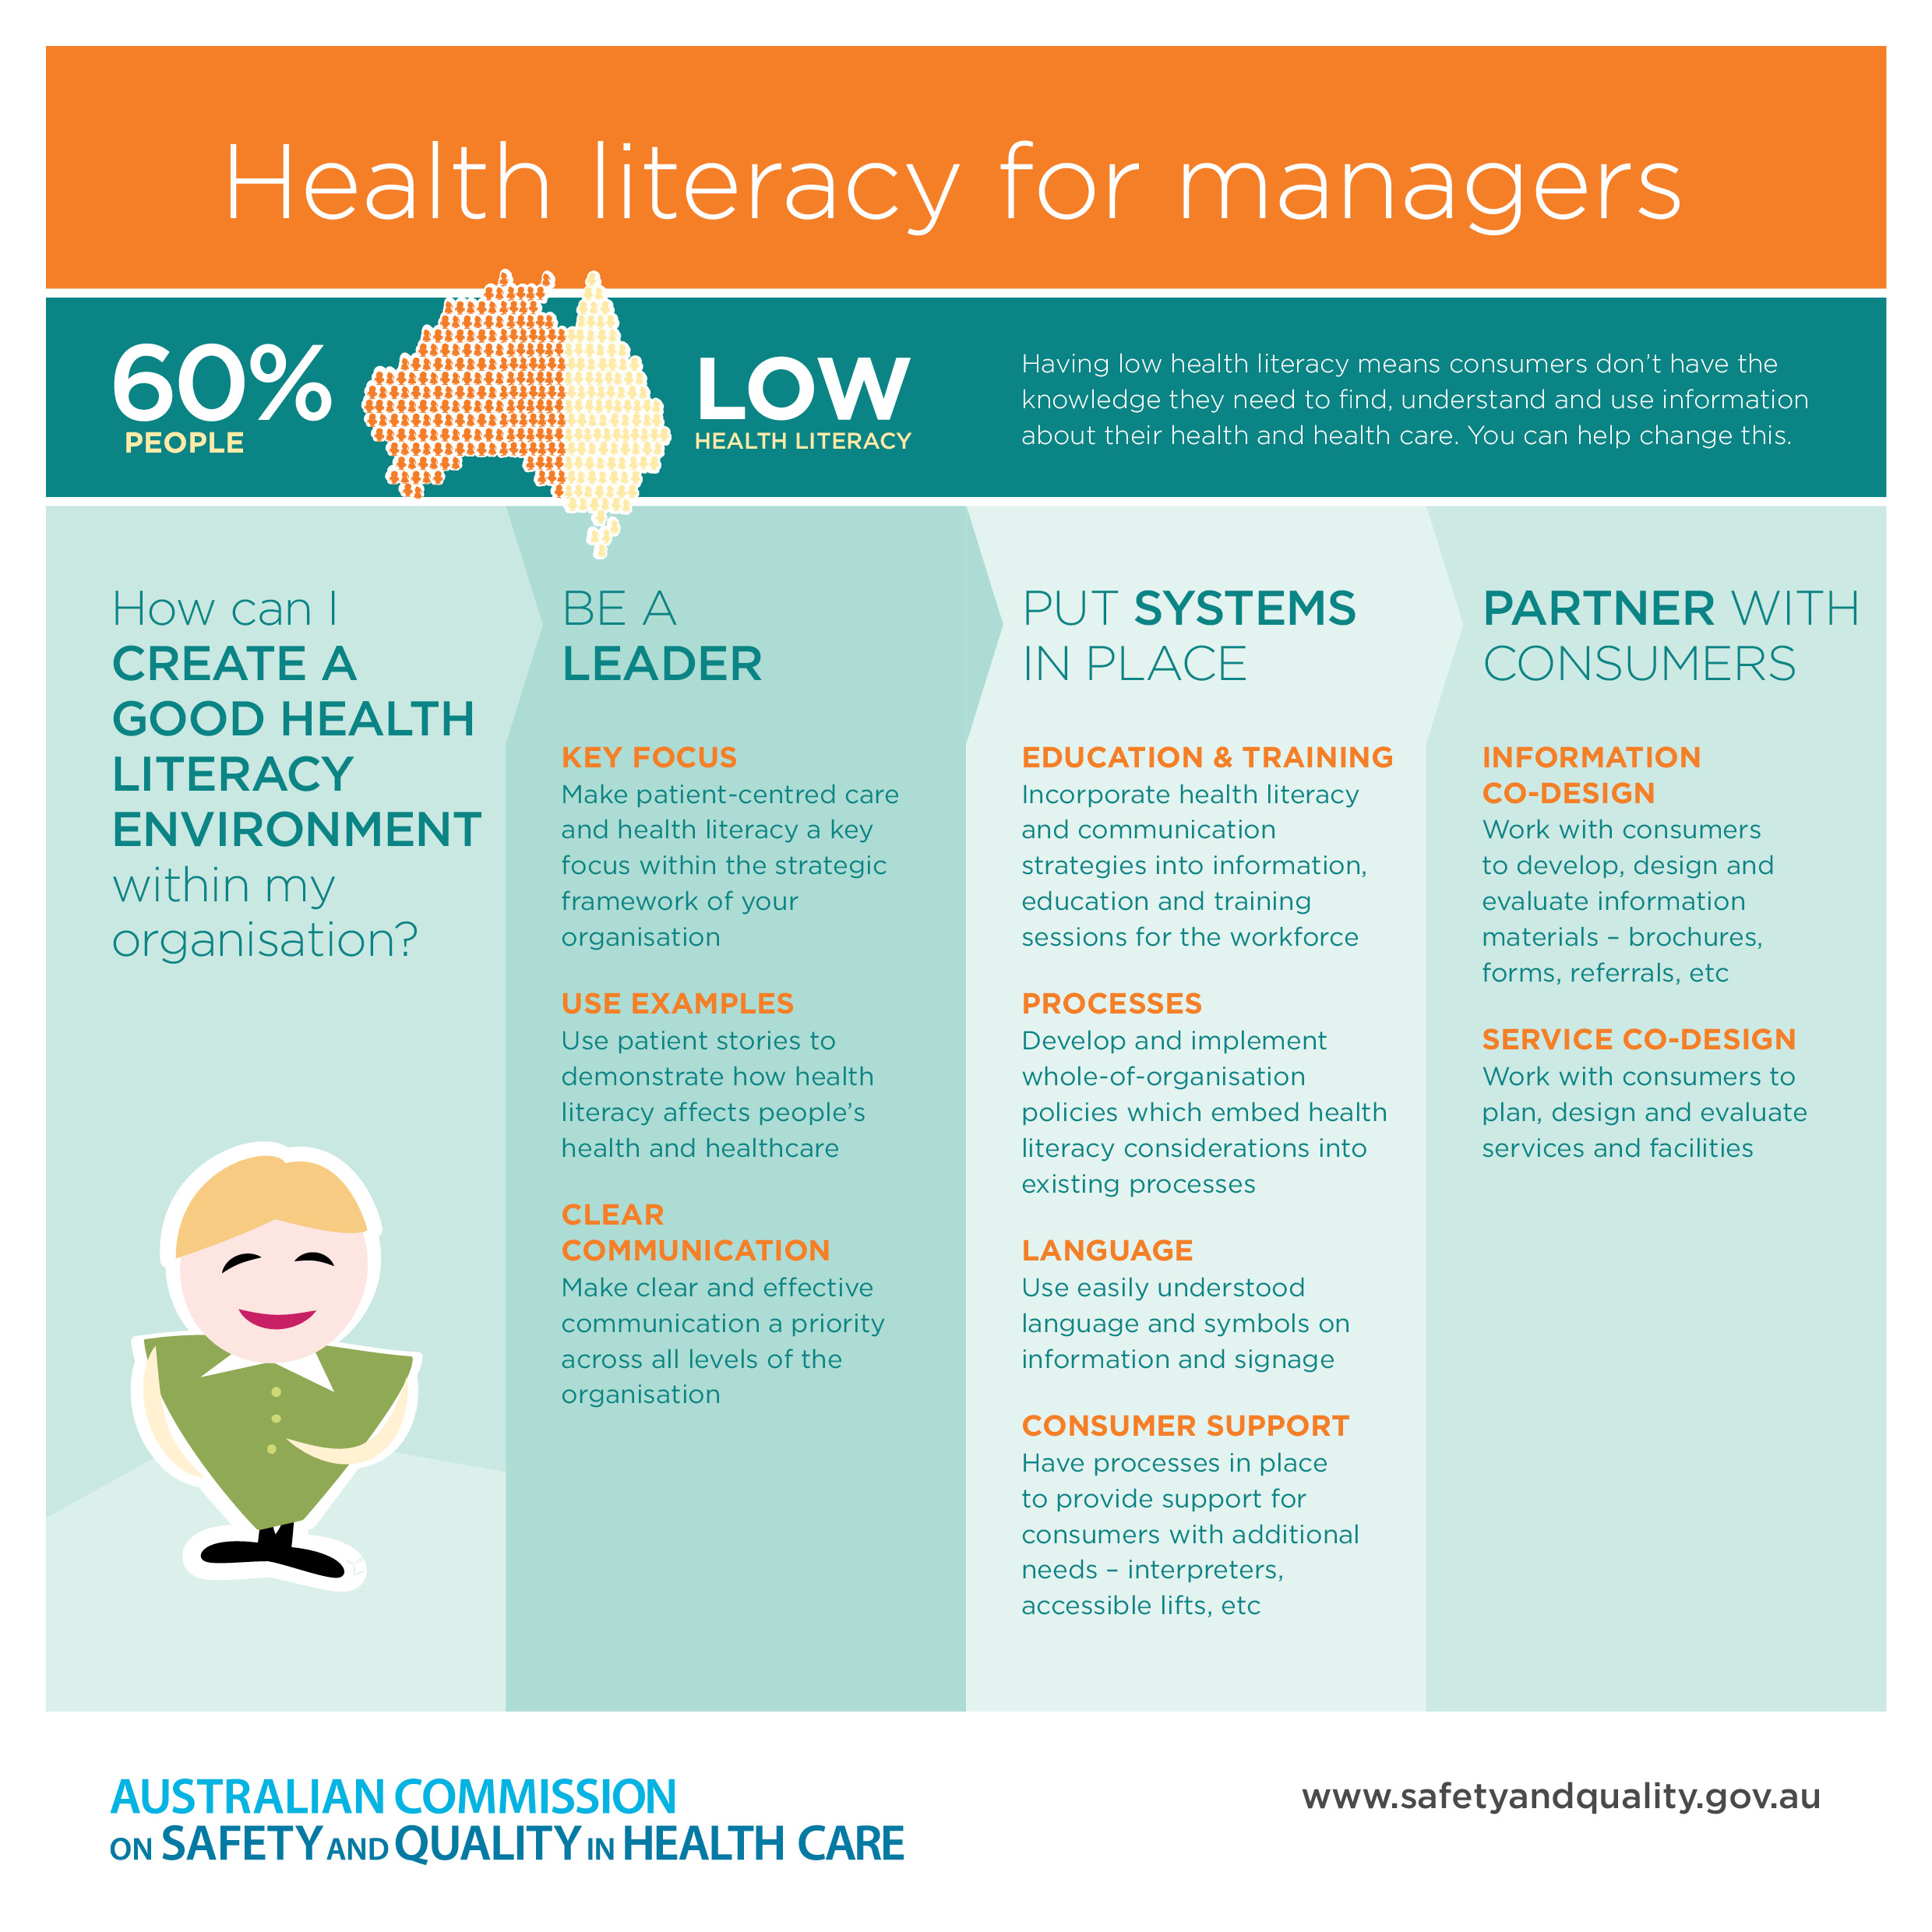 Infographic-Health-literacy-for-executives-and-managers.jpg